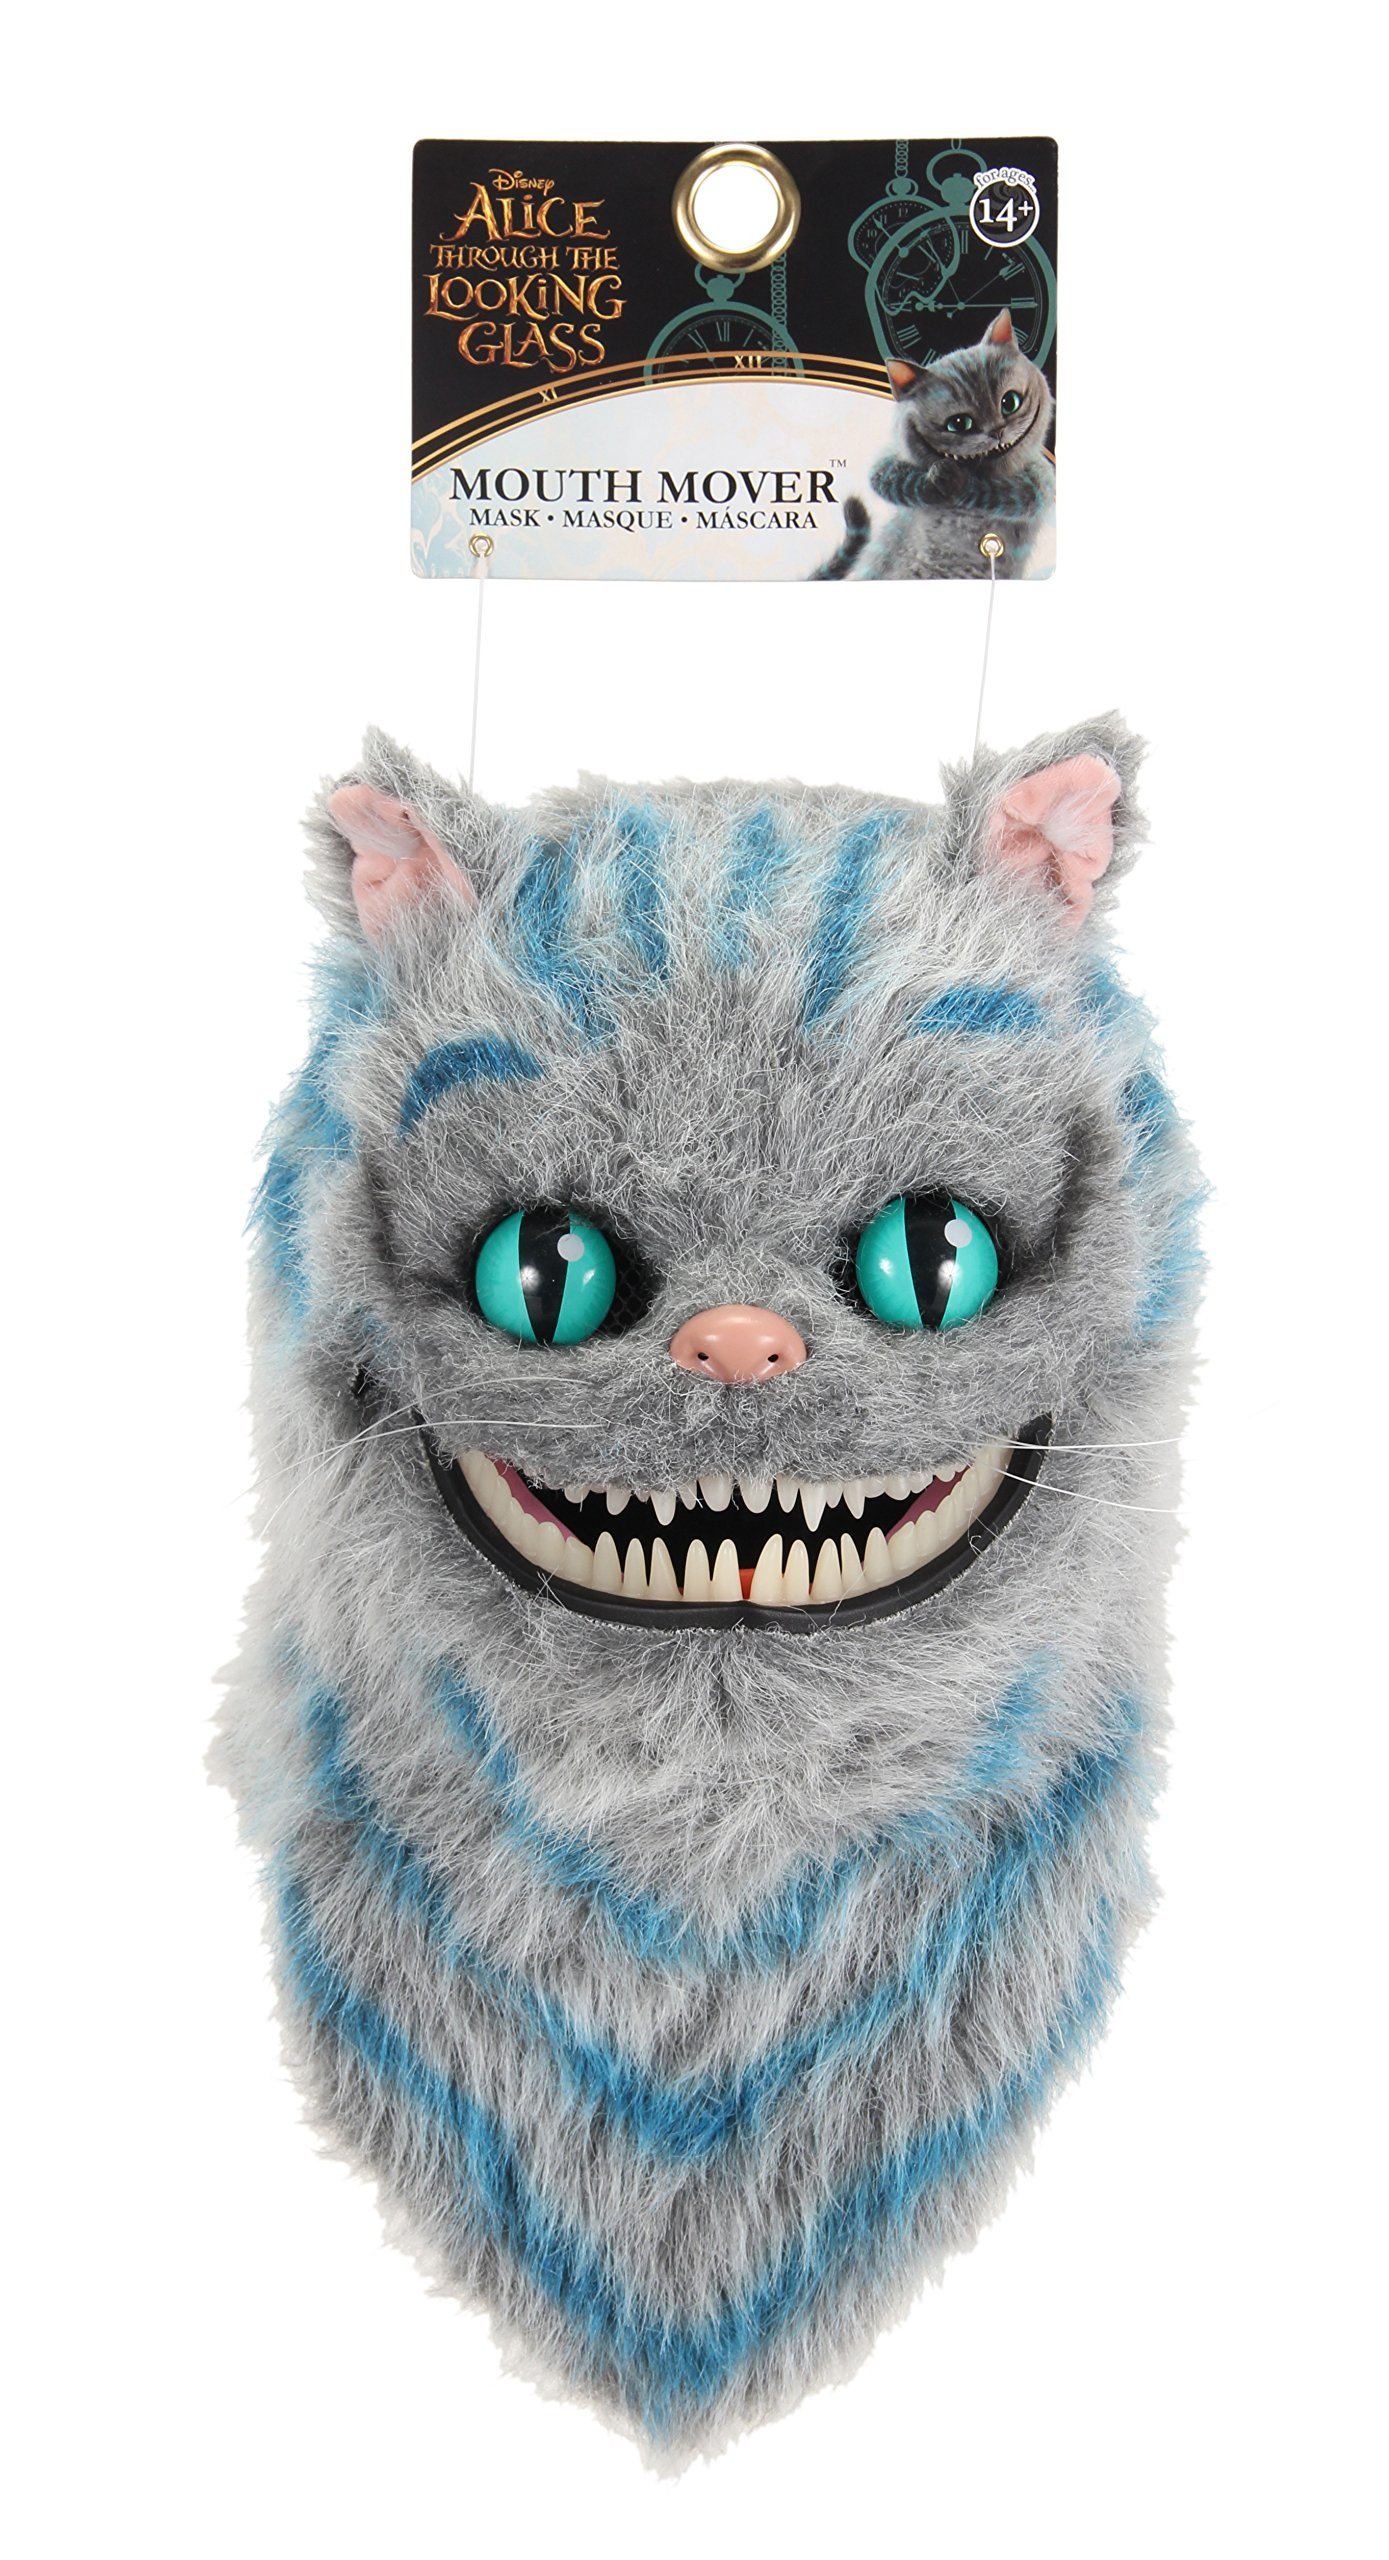 Alice in Wonderland Cheshire Cat Mouth Mover Mask - ST